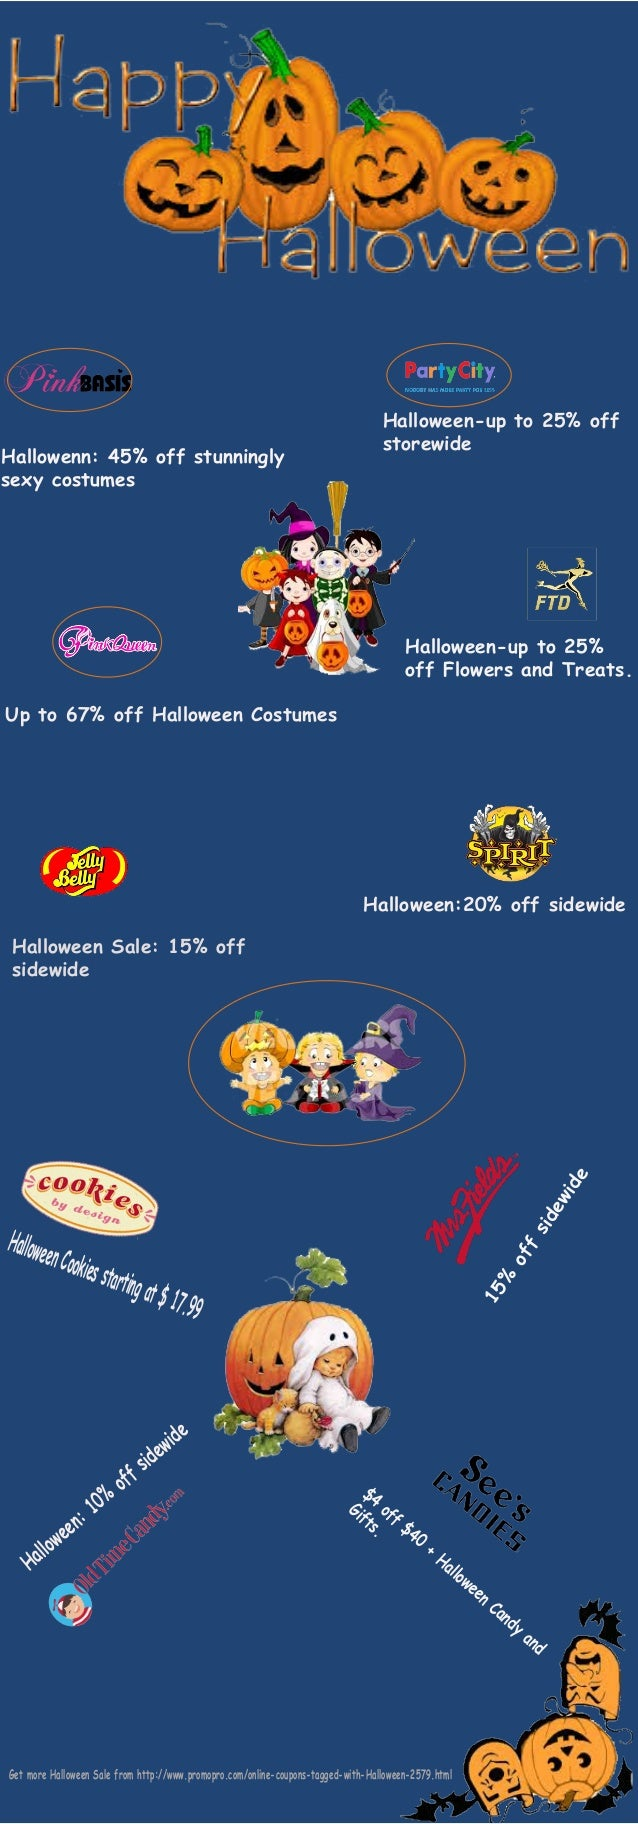 Hallowenn: 45% off stunningly  sexy costumes  Halloween-up to 25% off  storewide  Up to 67% off Halloween Costumes  Hallow...